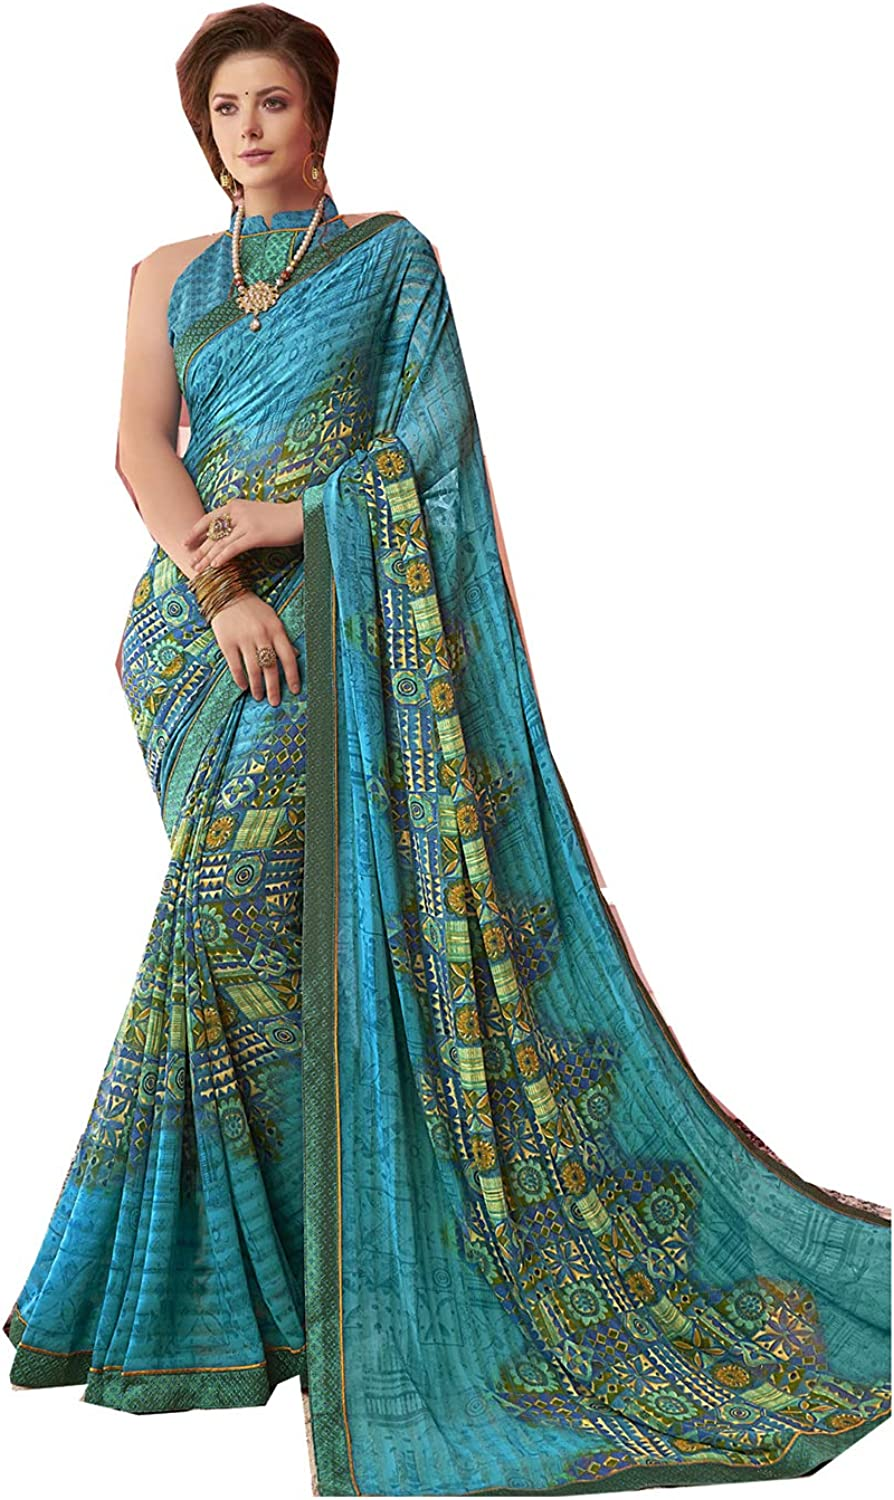 Fashions Trendz Indian Women Designer Party Wear Ethnic Traditional Saree.